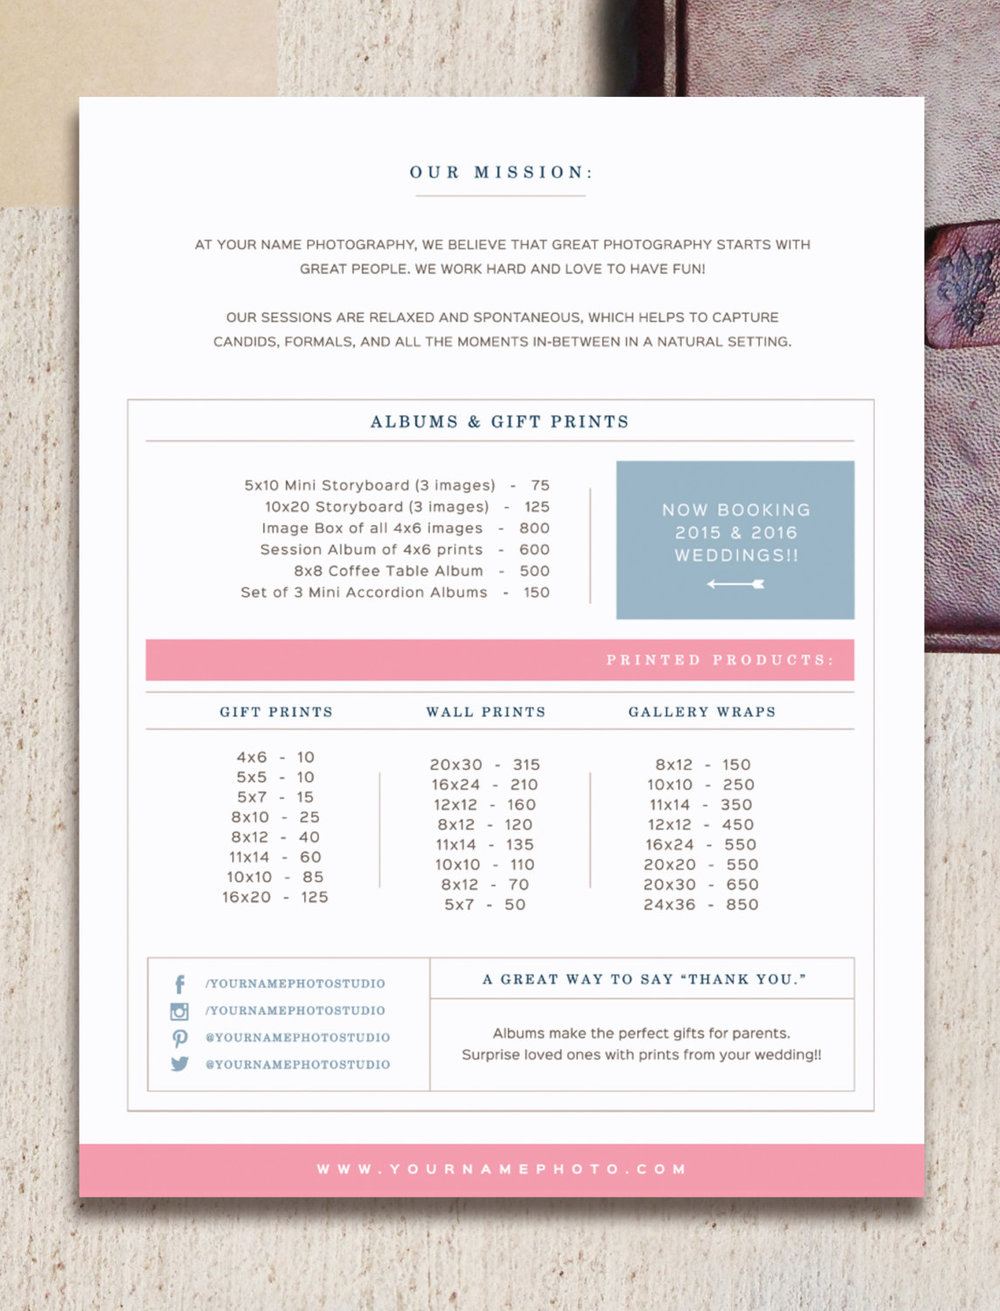 Pricing Guide Template For Wedding Photographers   Digital Printed Products Price  List   Photoshop Files   Letterhead Design   M0131  Price List Design Template